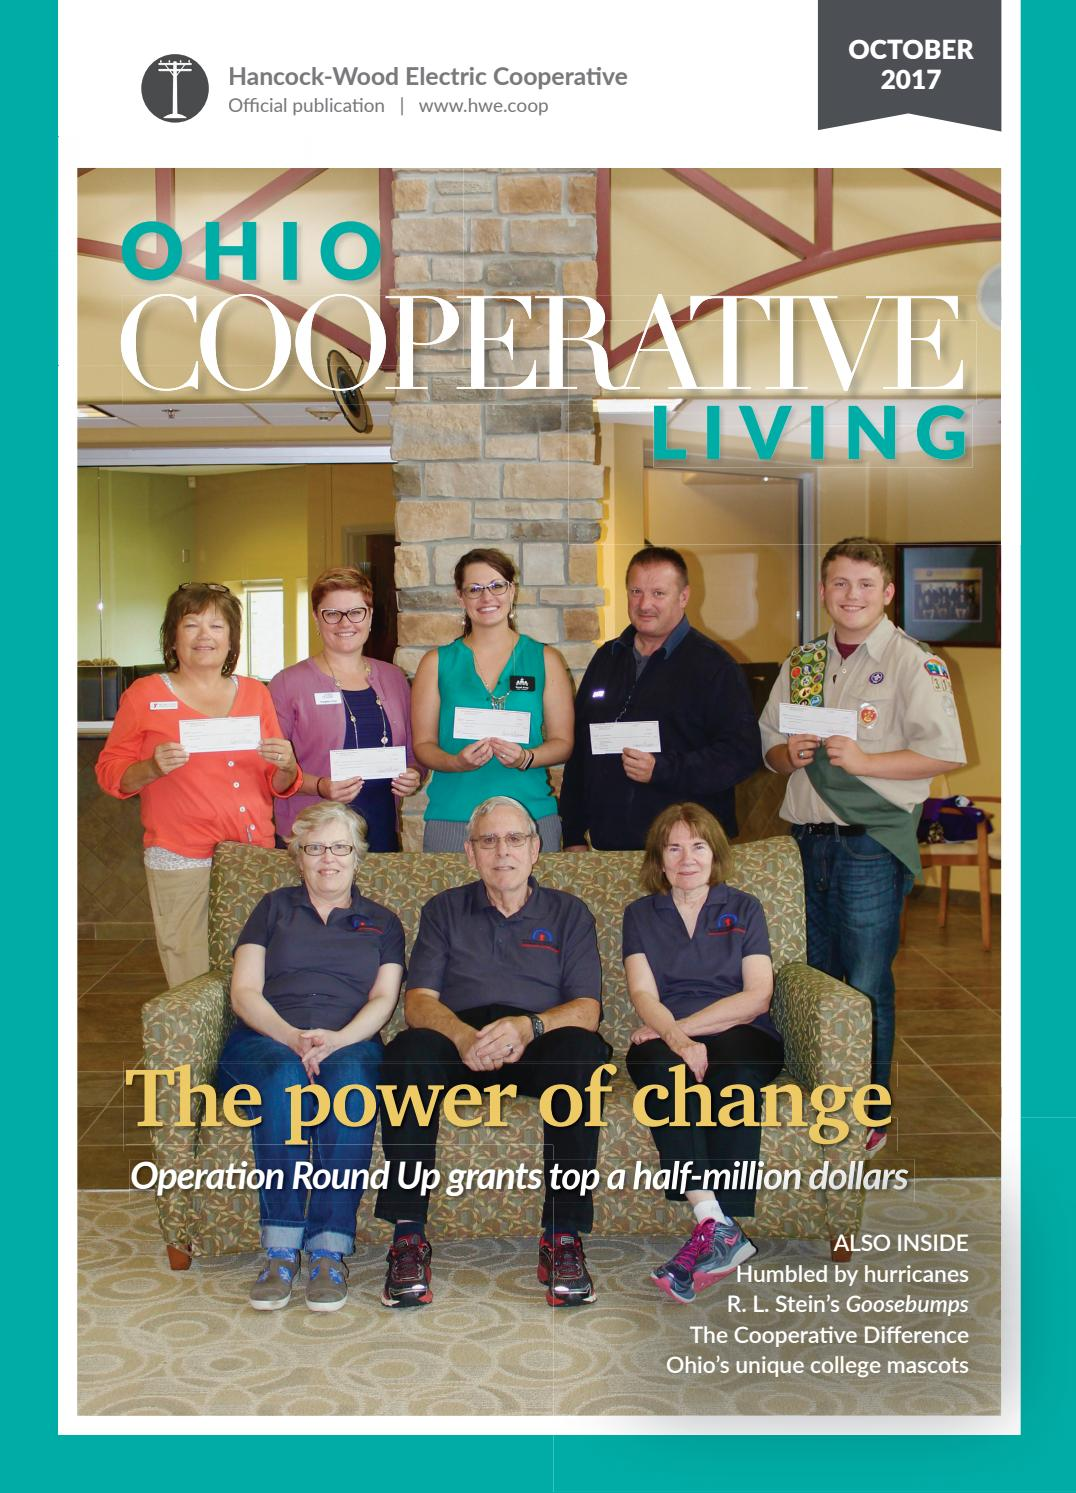 Ohio Cooperative Living - Hancock Wood - October 2017 by